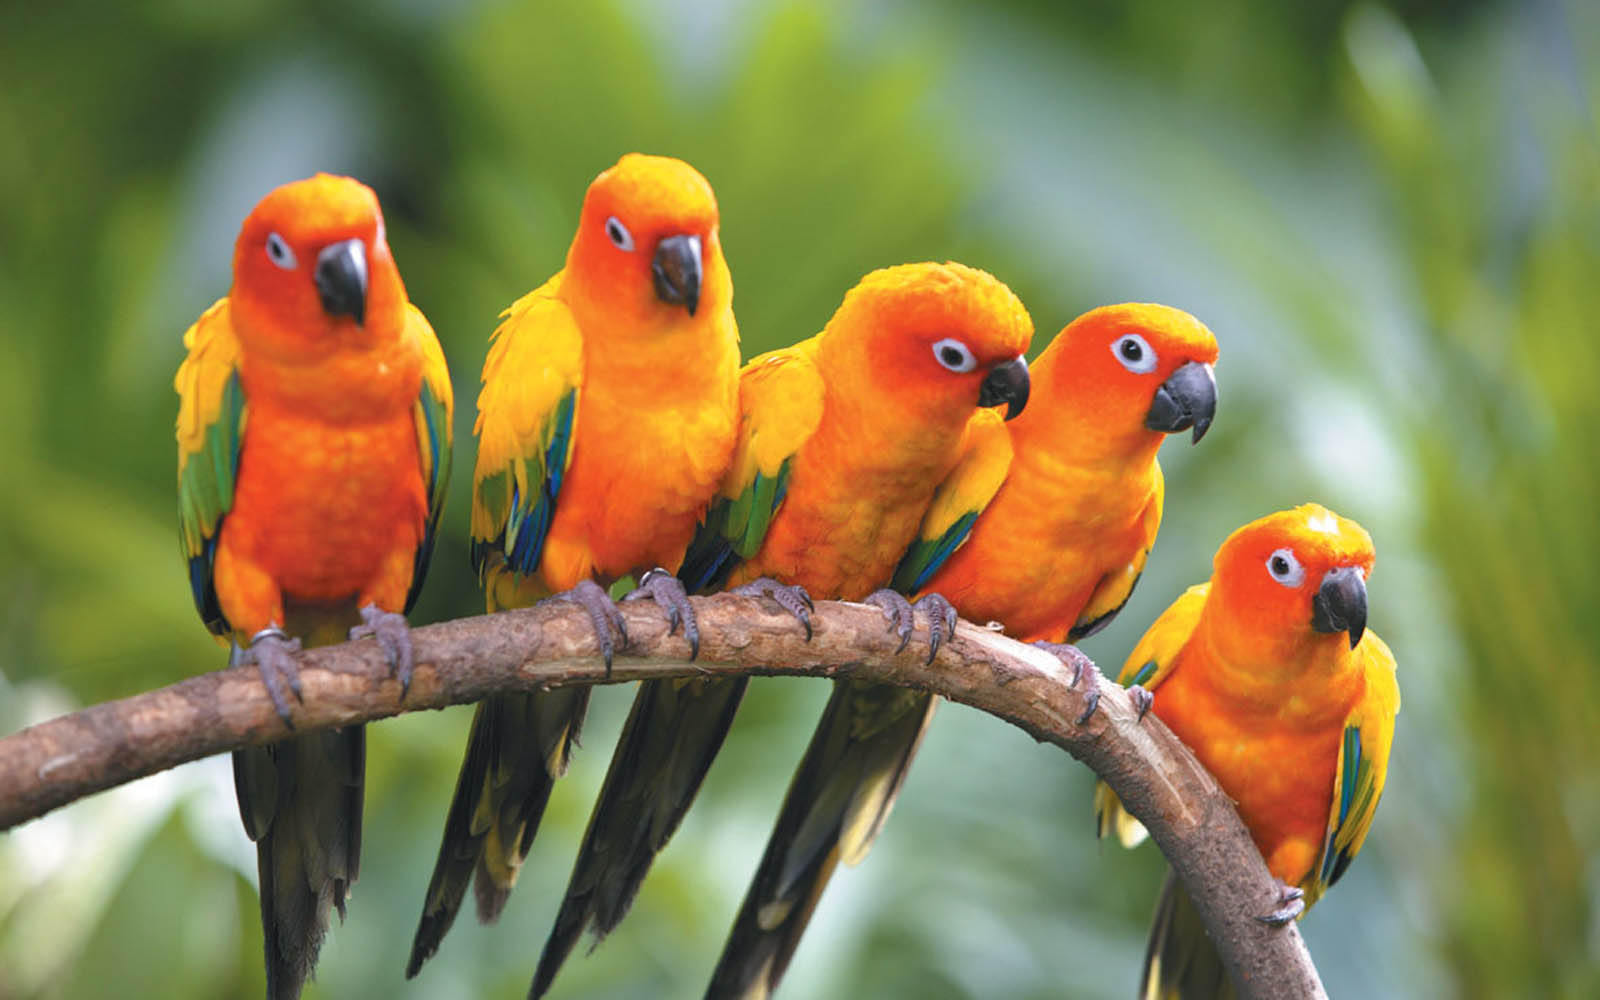 mp3 download free forever love birds wallpapers love birds